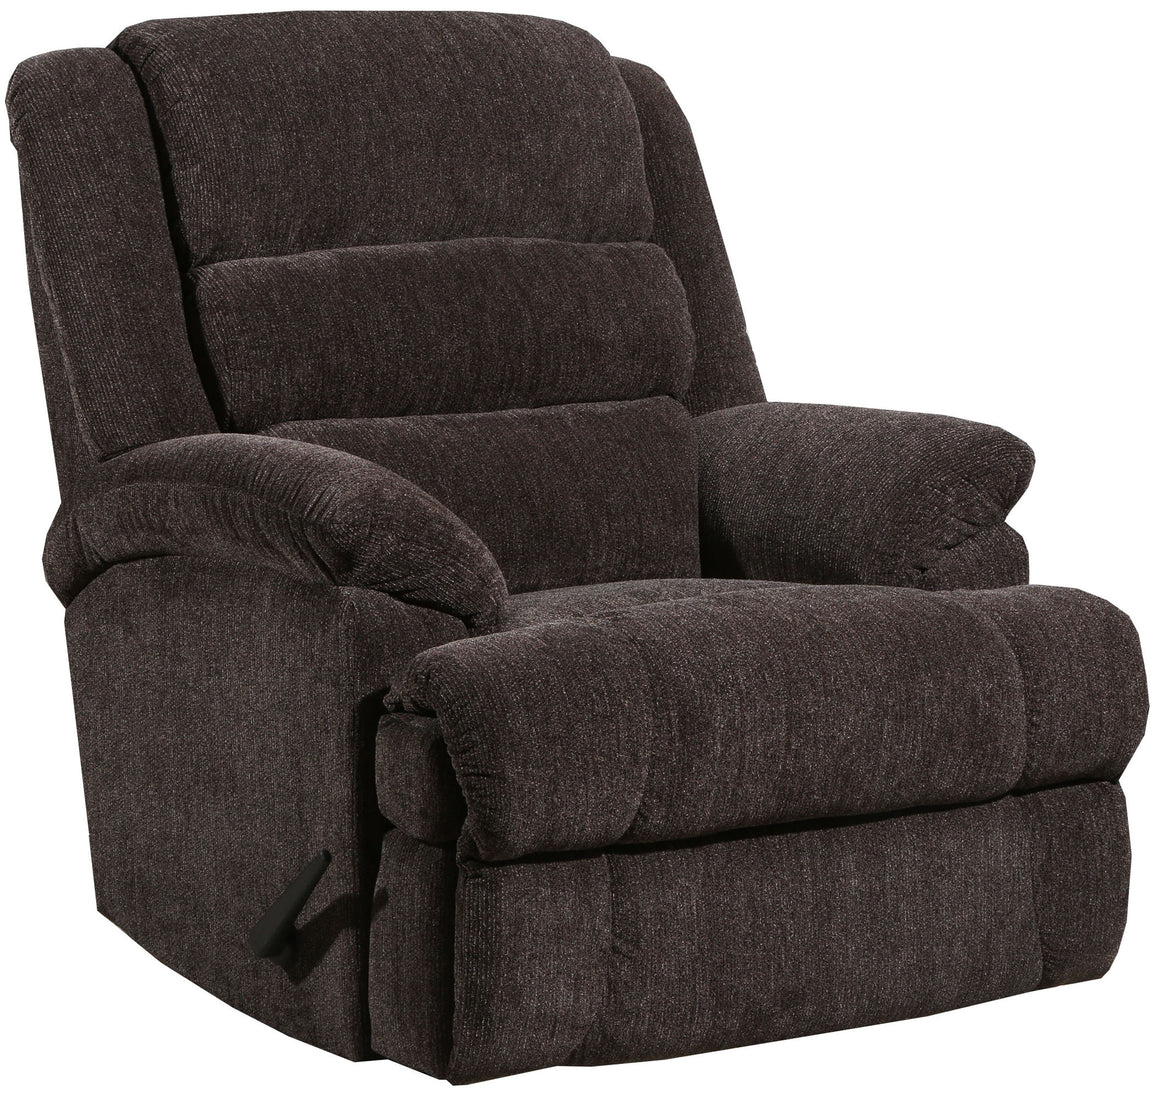 4502 Comfort King Chaise Wallsaver Recliner - Tigereye